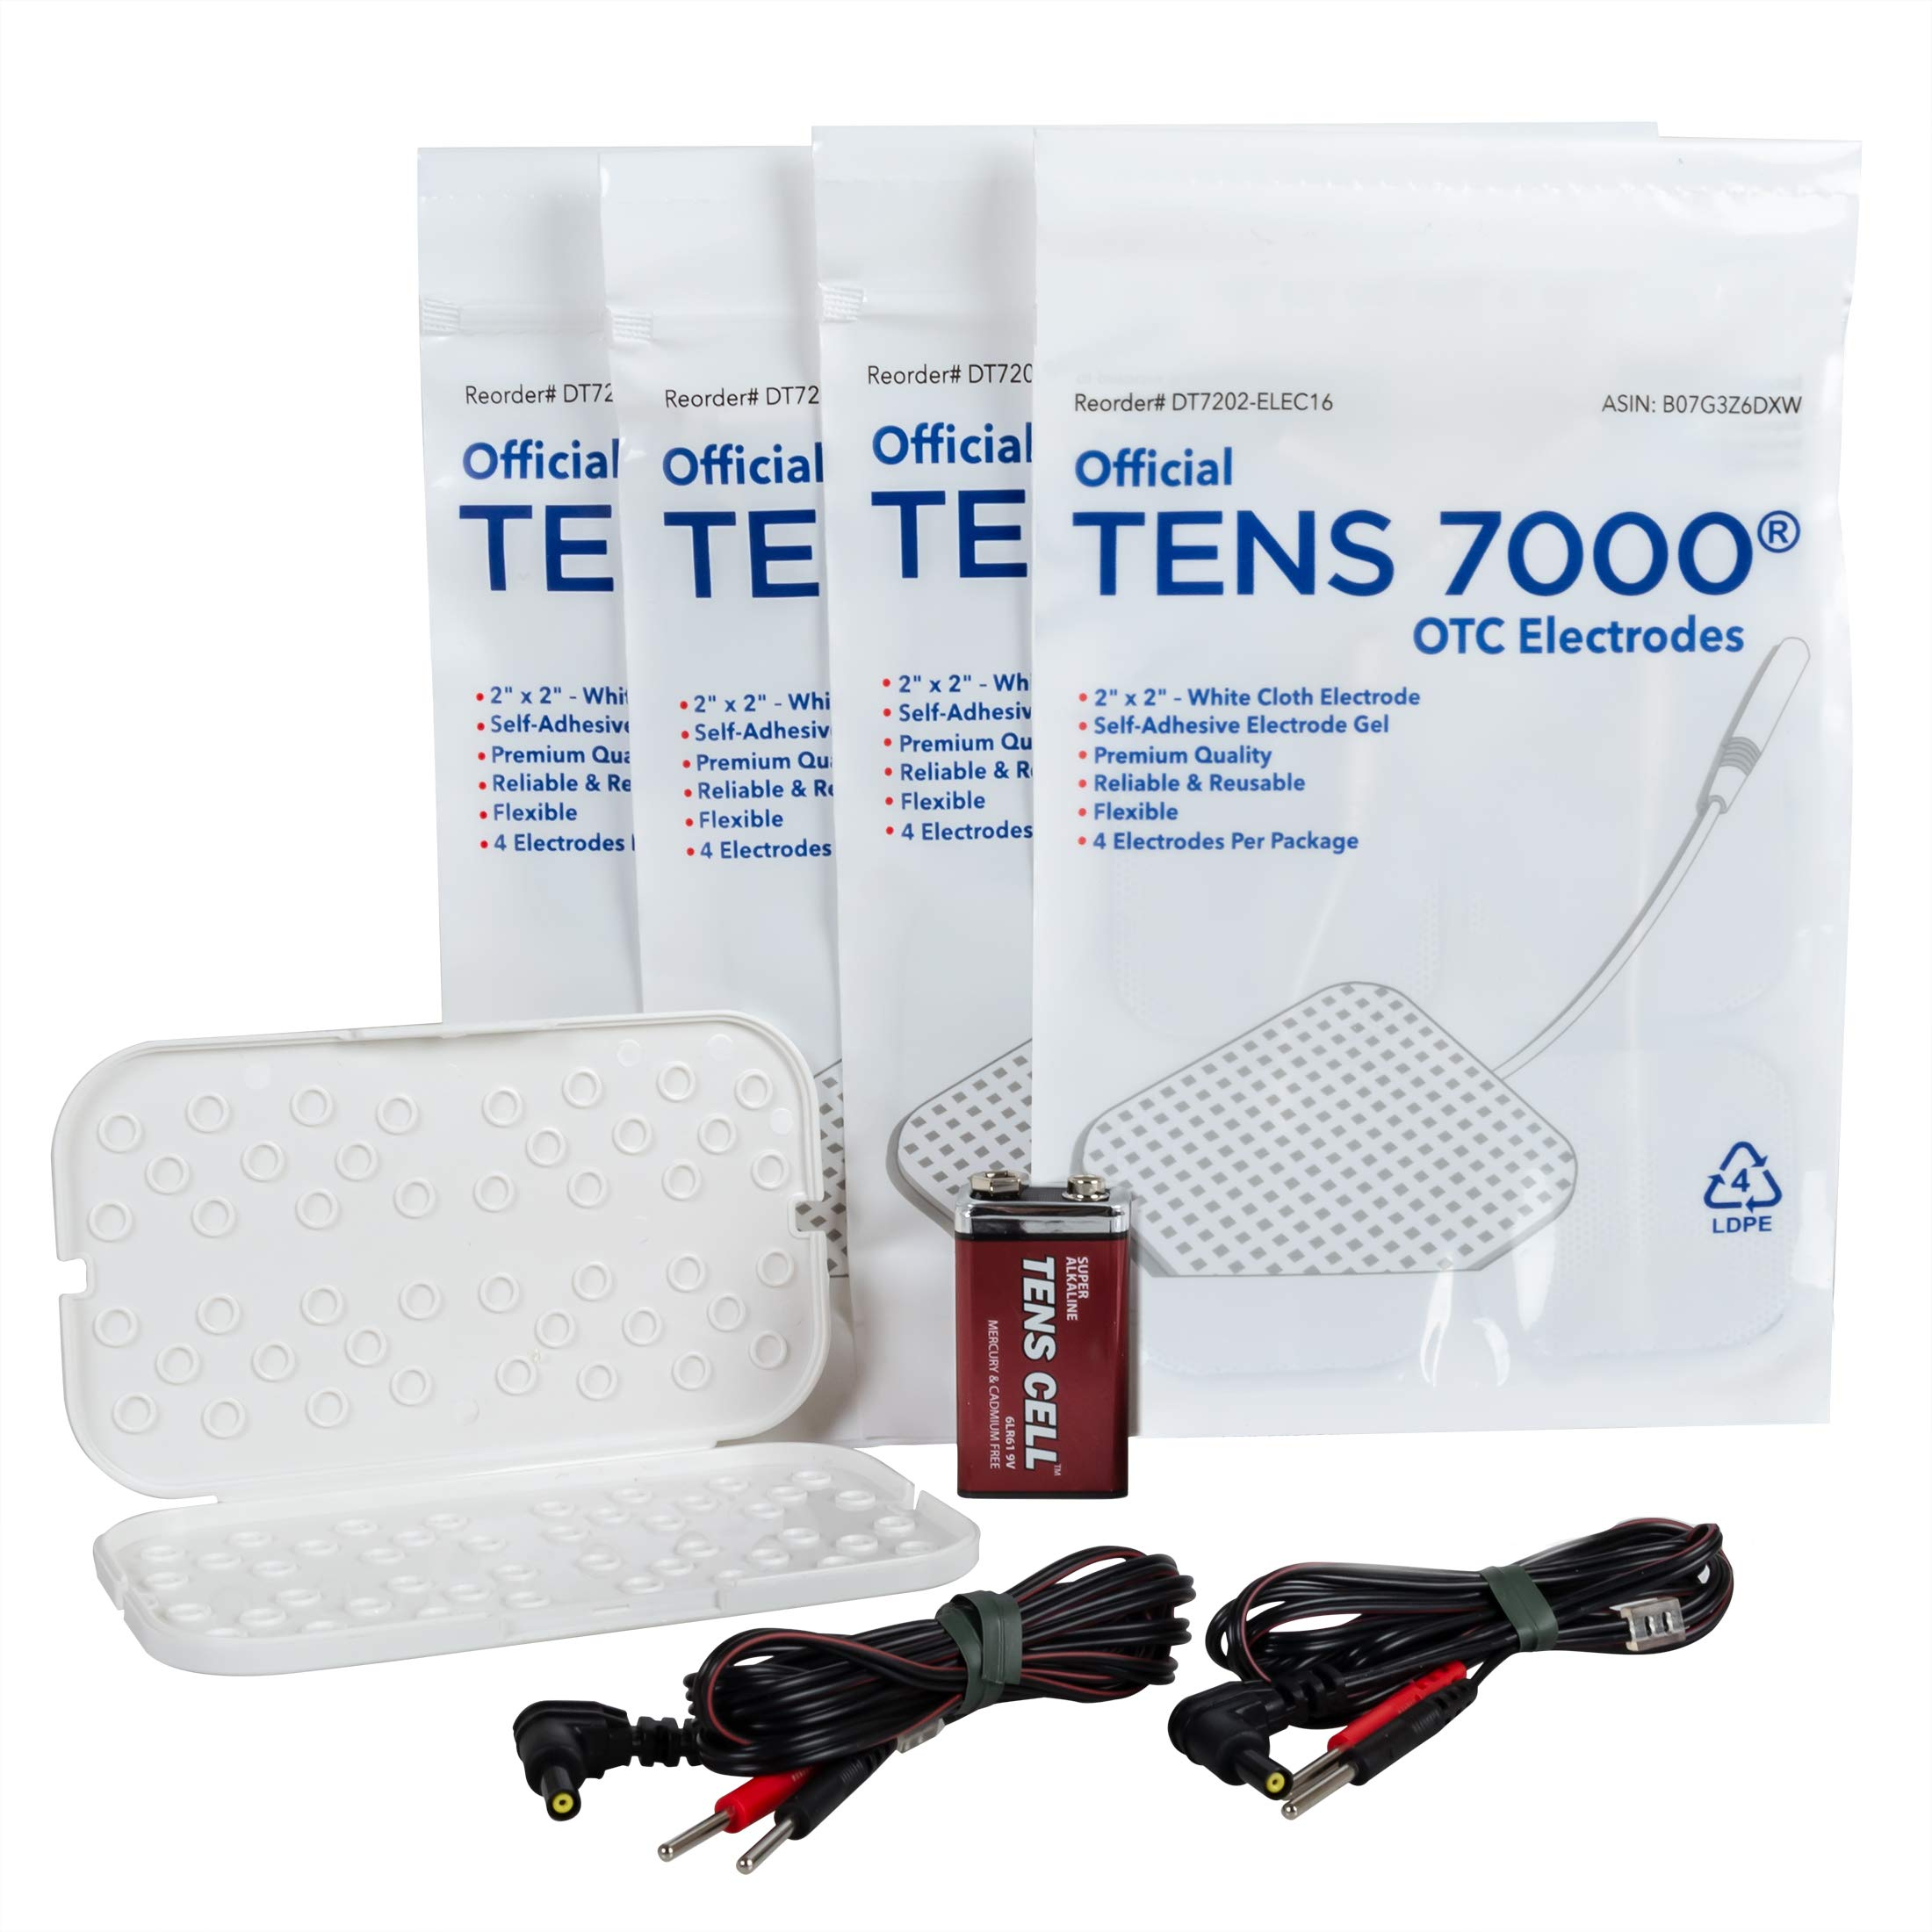 TENS 7000 Refill Kit - Includes 16 Premium TENS Unit Replacement Pads, 4 Lead Wires, 9-Volt Replacement Battery, 1 Electrode Pad Holder